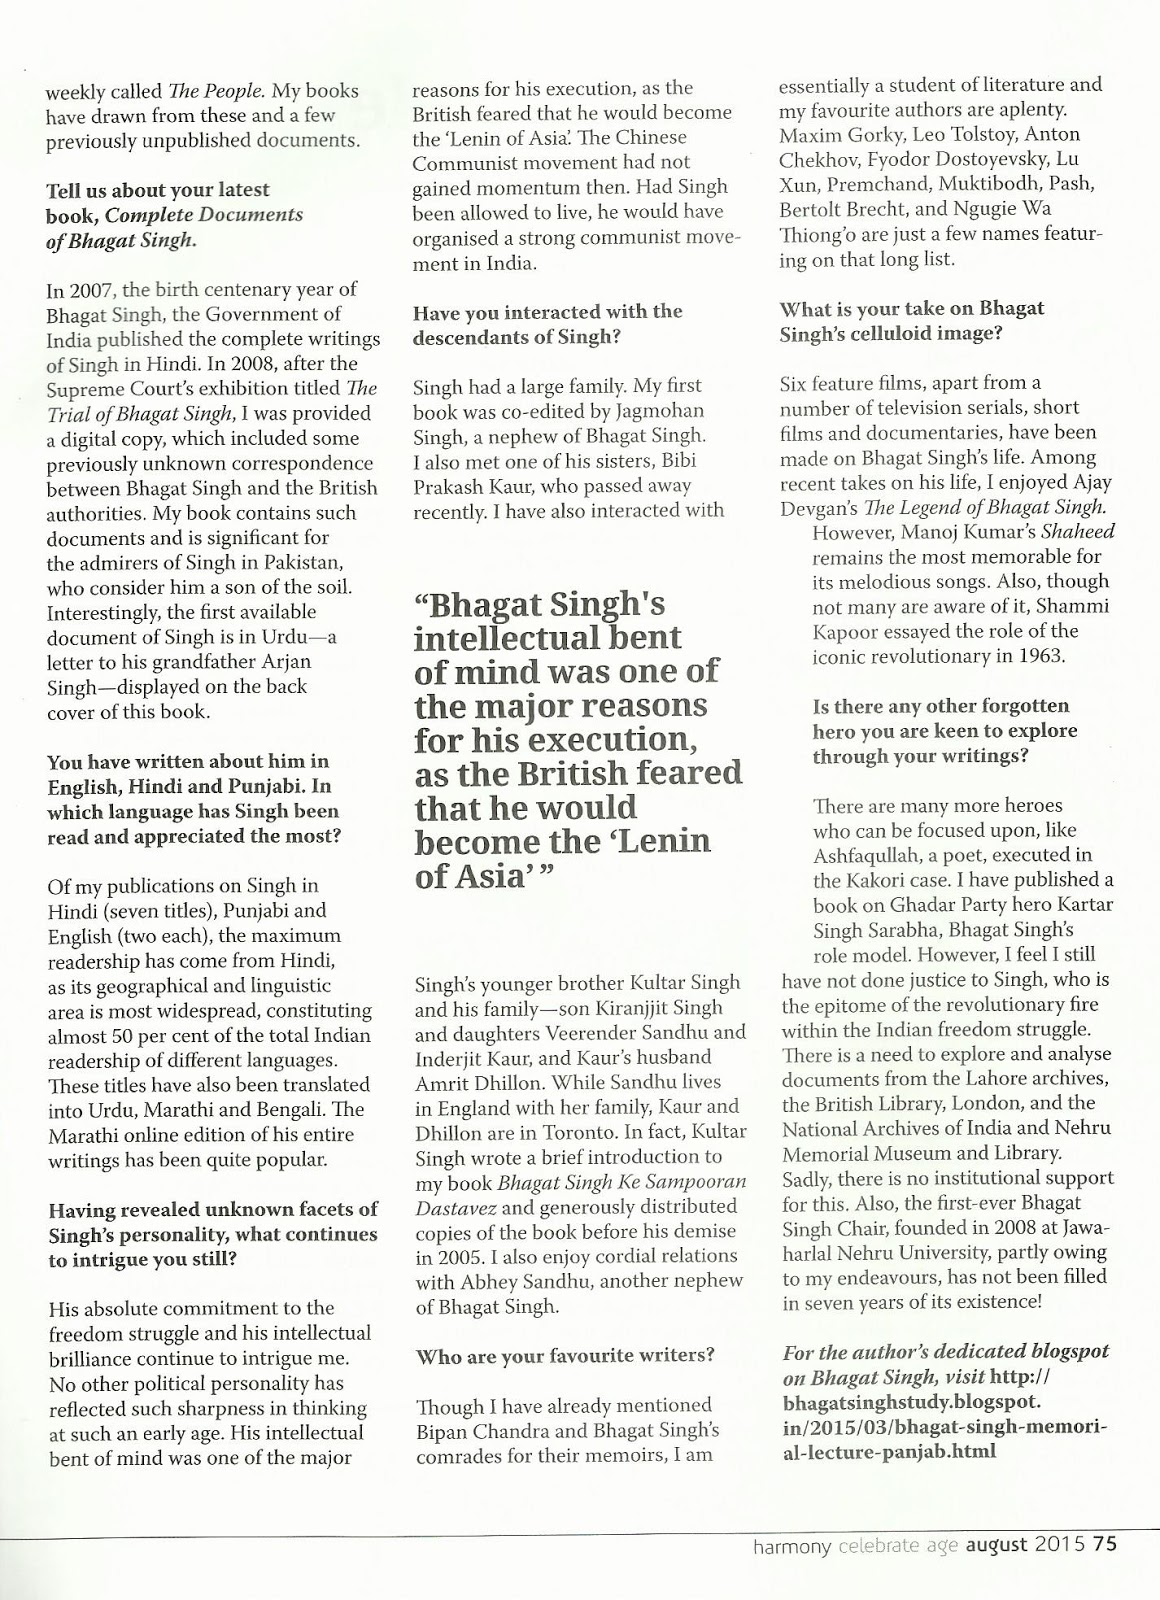 bhagat singh study chaman lal british feared bhagat singh harmony magazine carried in issue my interview on bhagat singh done by suparna saraswati puri